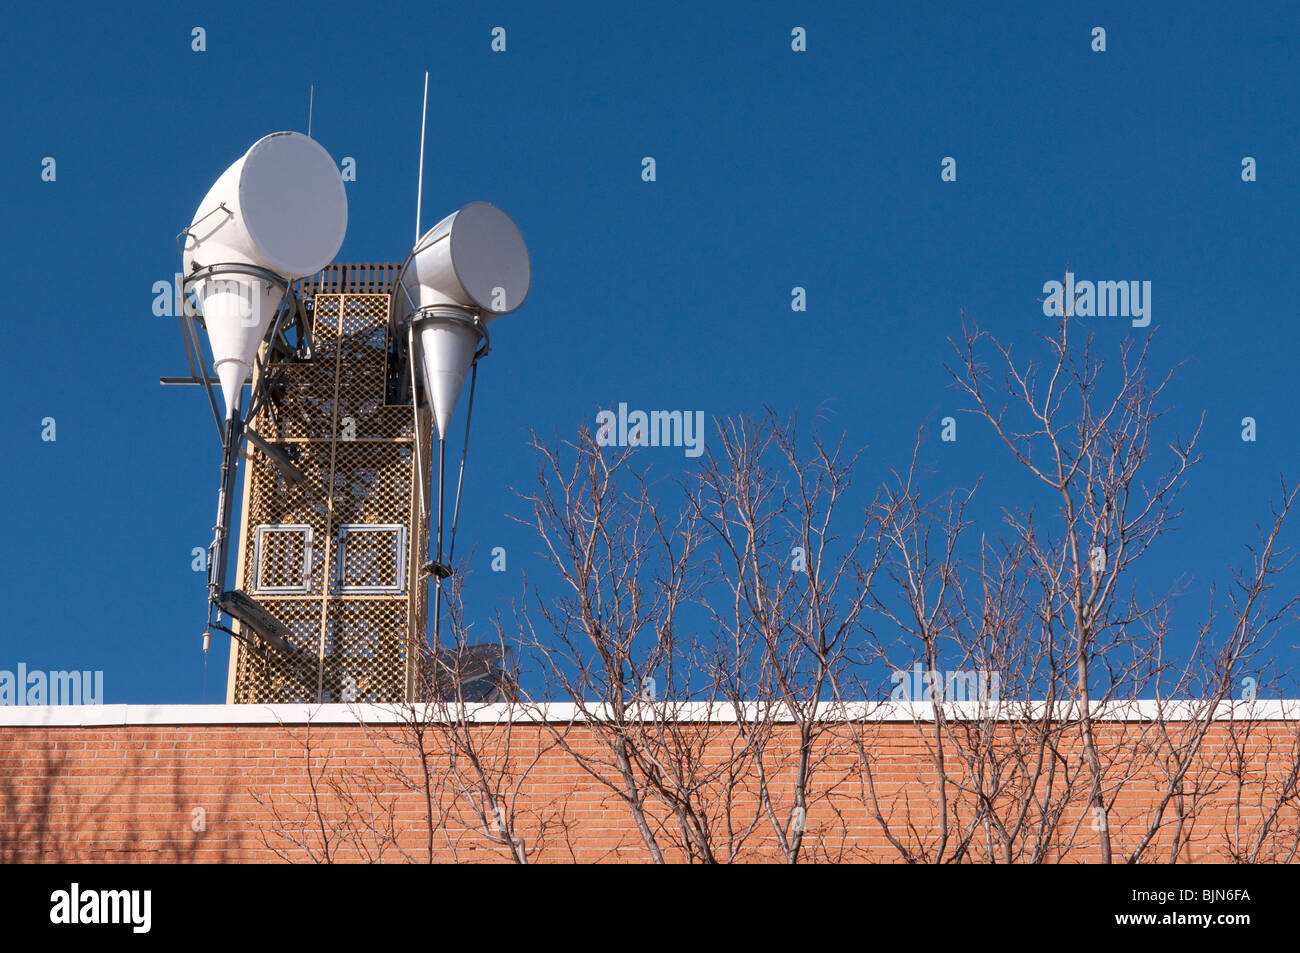 Satellite, mobile telecommunications mast on top of an office building in Flagstaff, Arizona. - Stock Image